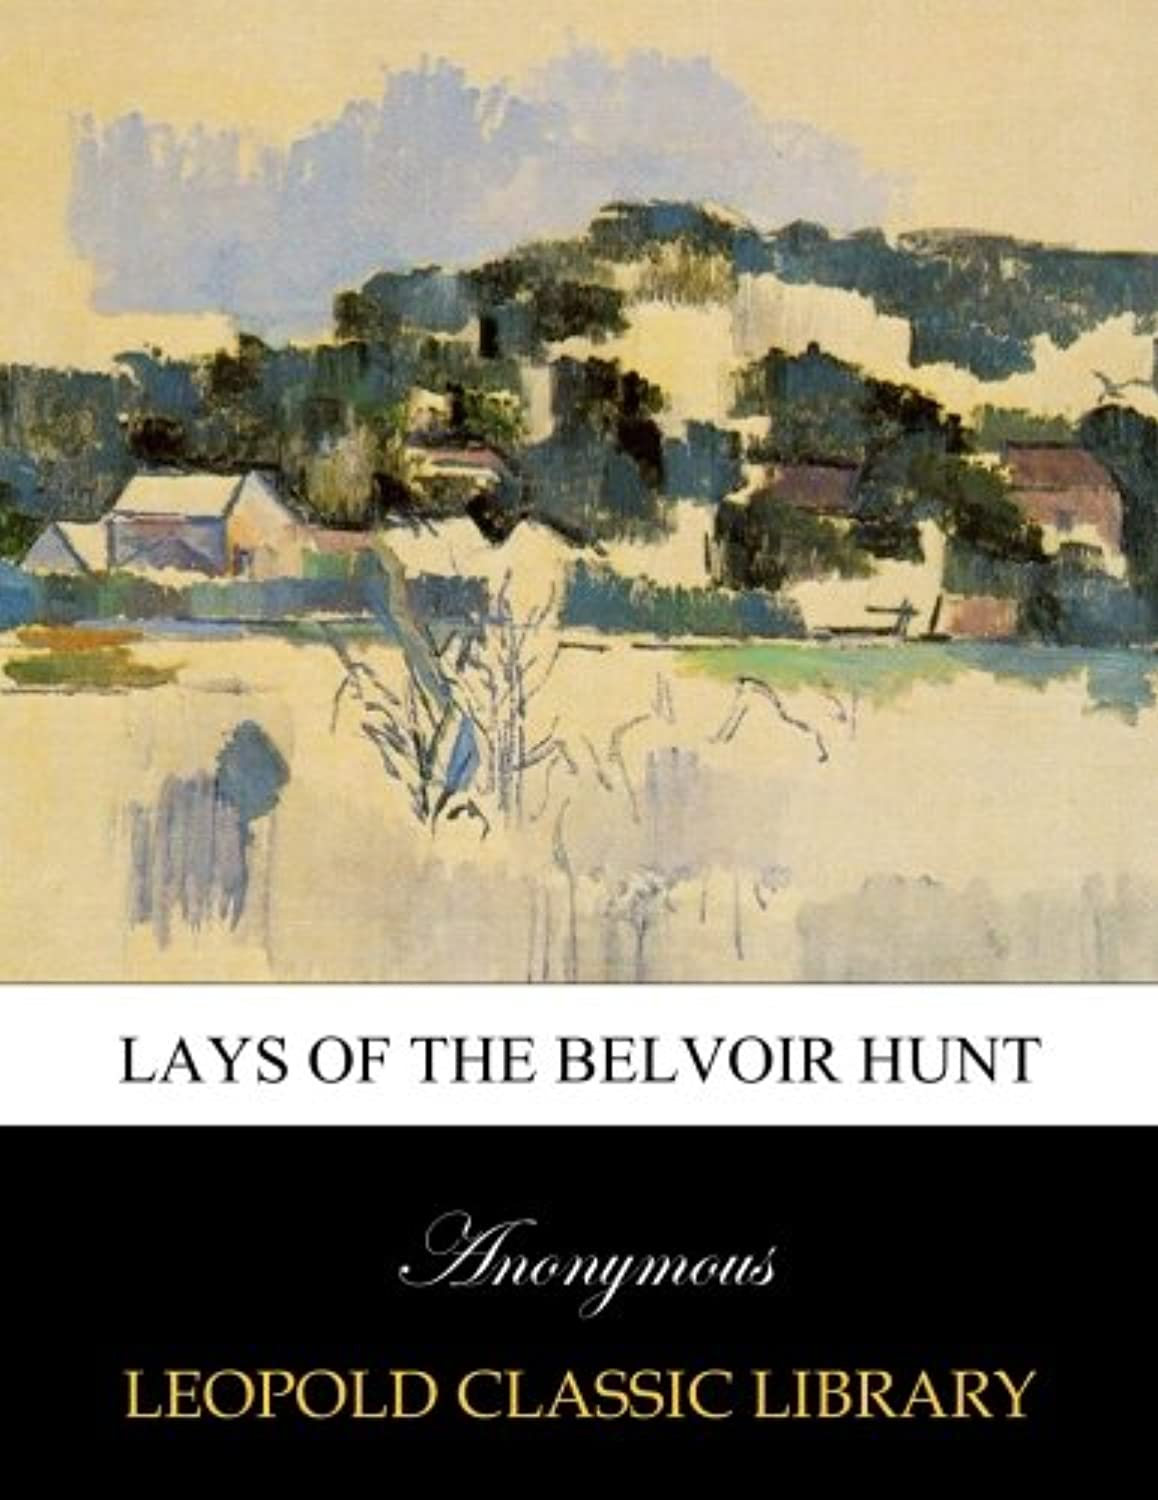 Lays of the Belvoir Hunt